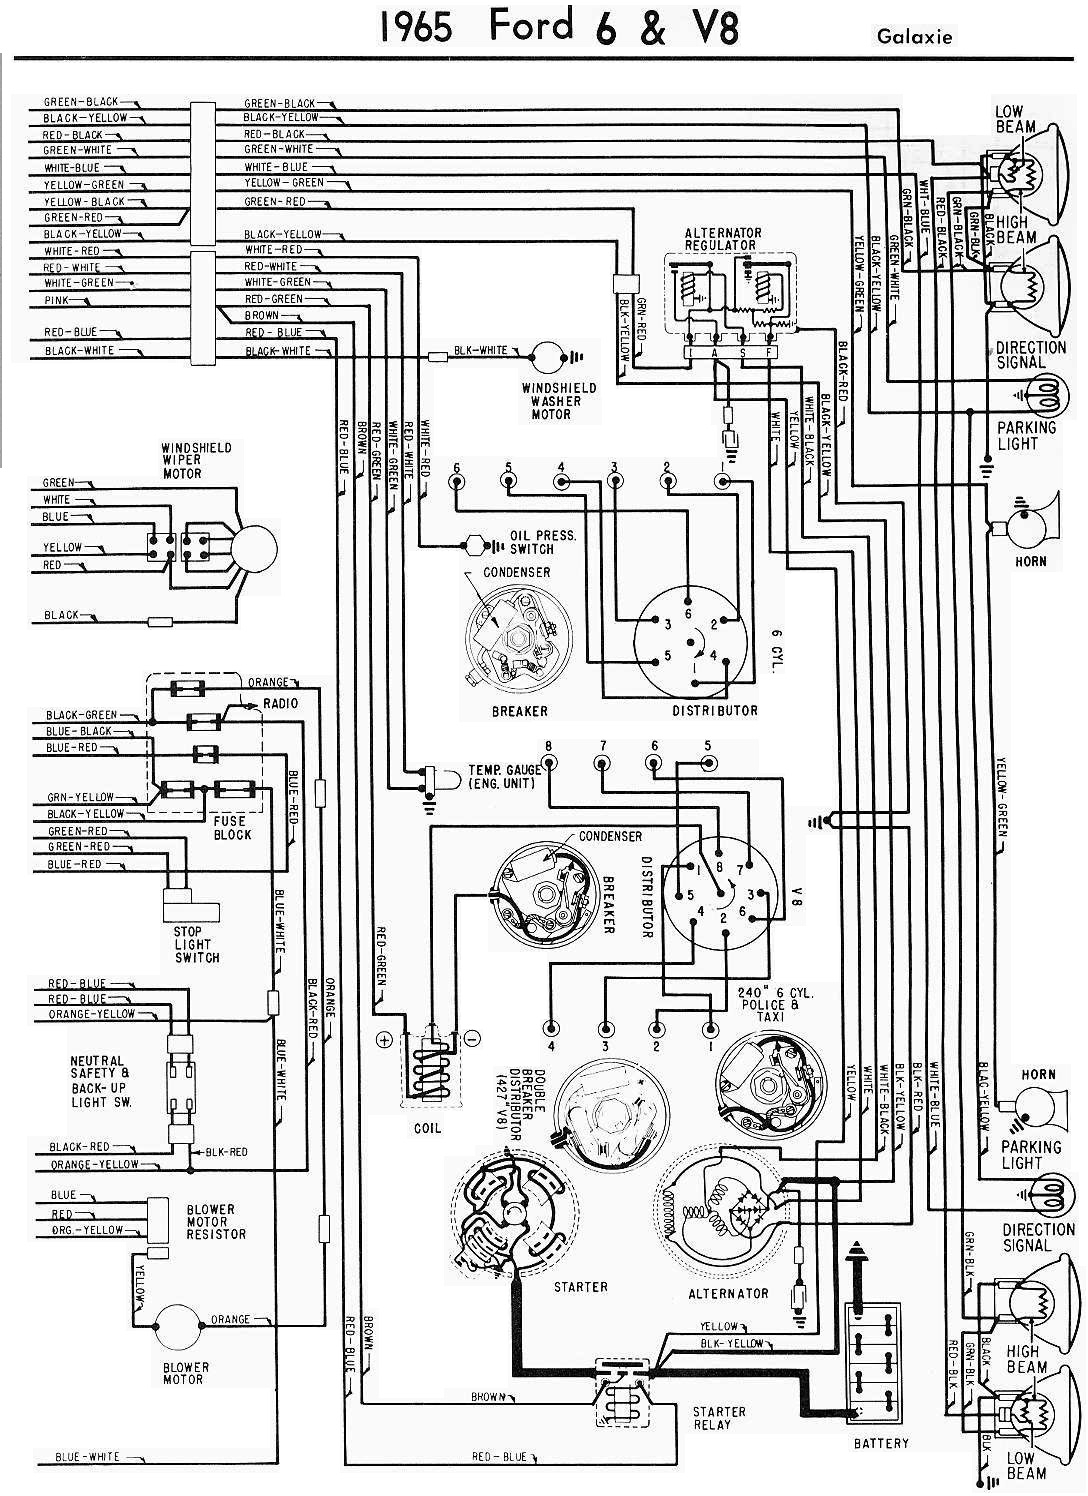 Ford Au Ignition Wiring Diagram Custom Project 460 Camper 1965 Galaxie Complete Electrical Part Duraspark 302